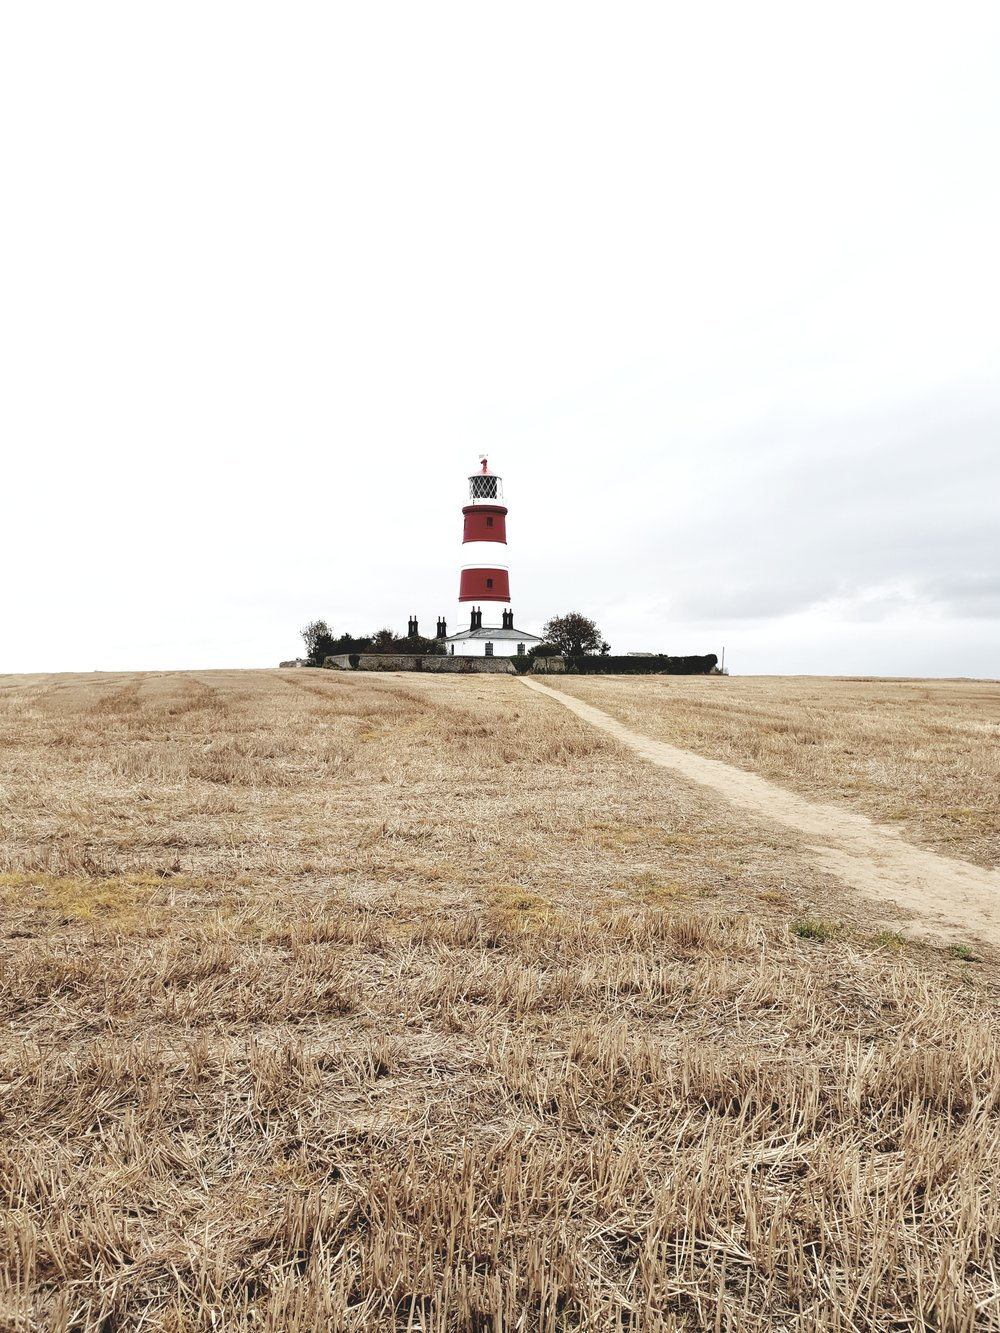 The lighthouse at Happisburgh which is just ten minutes drive from the house